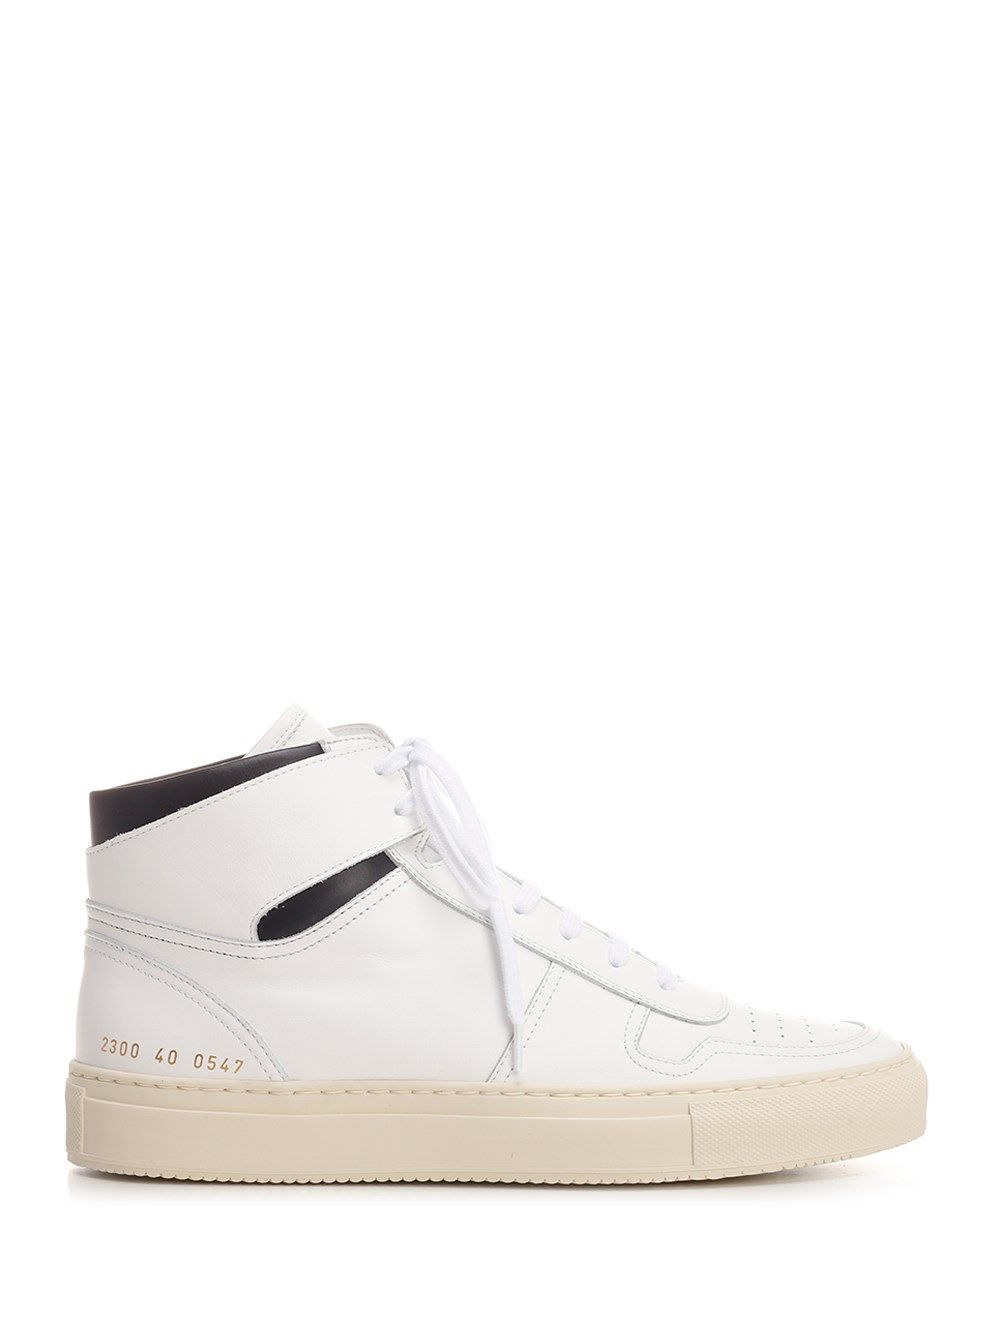 Common Projects COMMON PROJECTS MEN'S 23000547 WHITE OTHER MATERIALS SNEAKERS